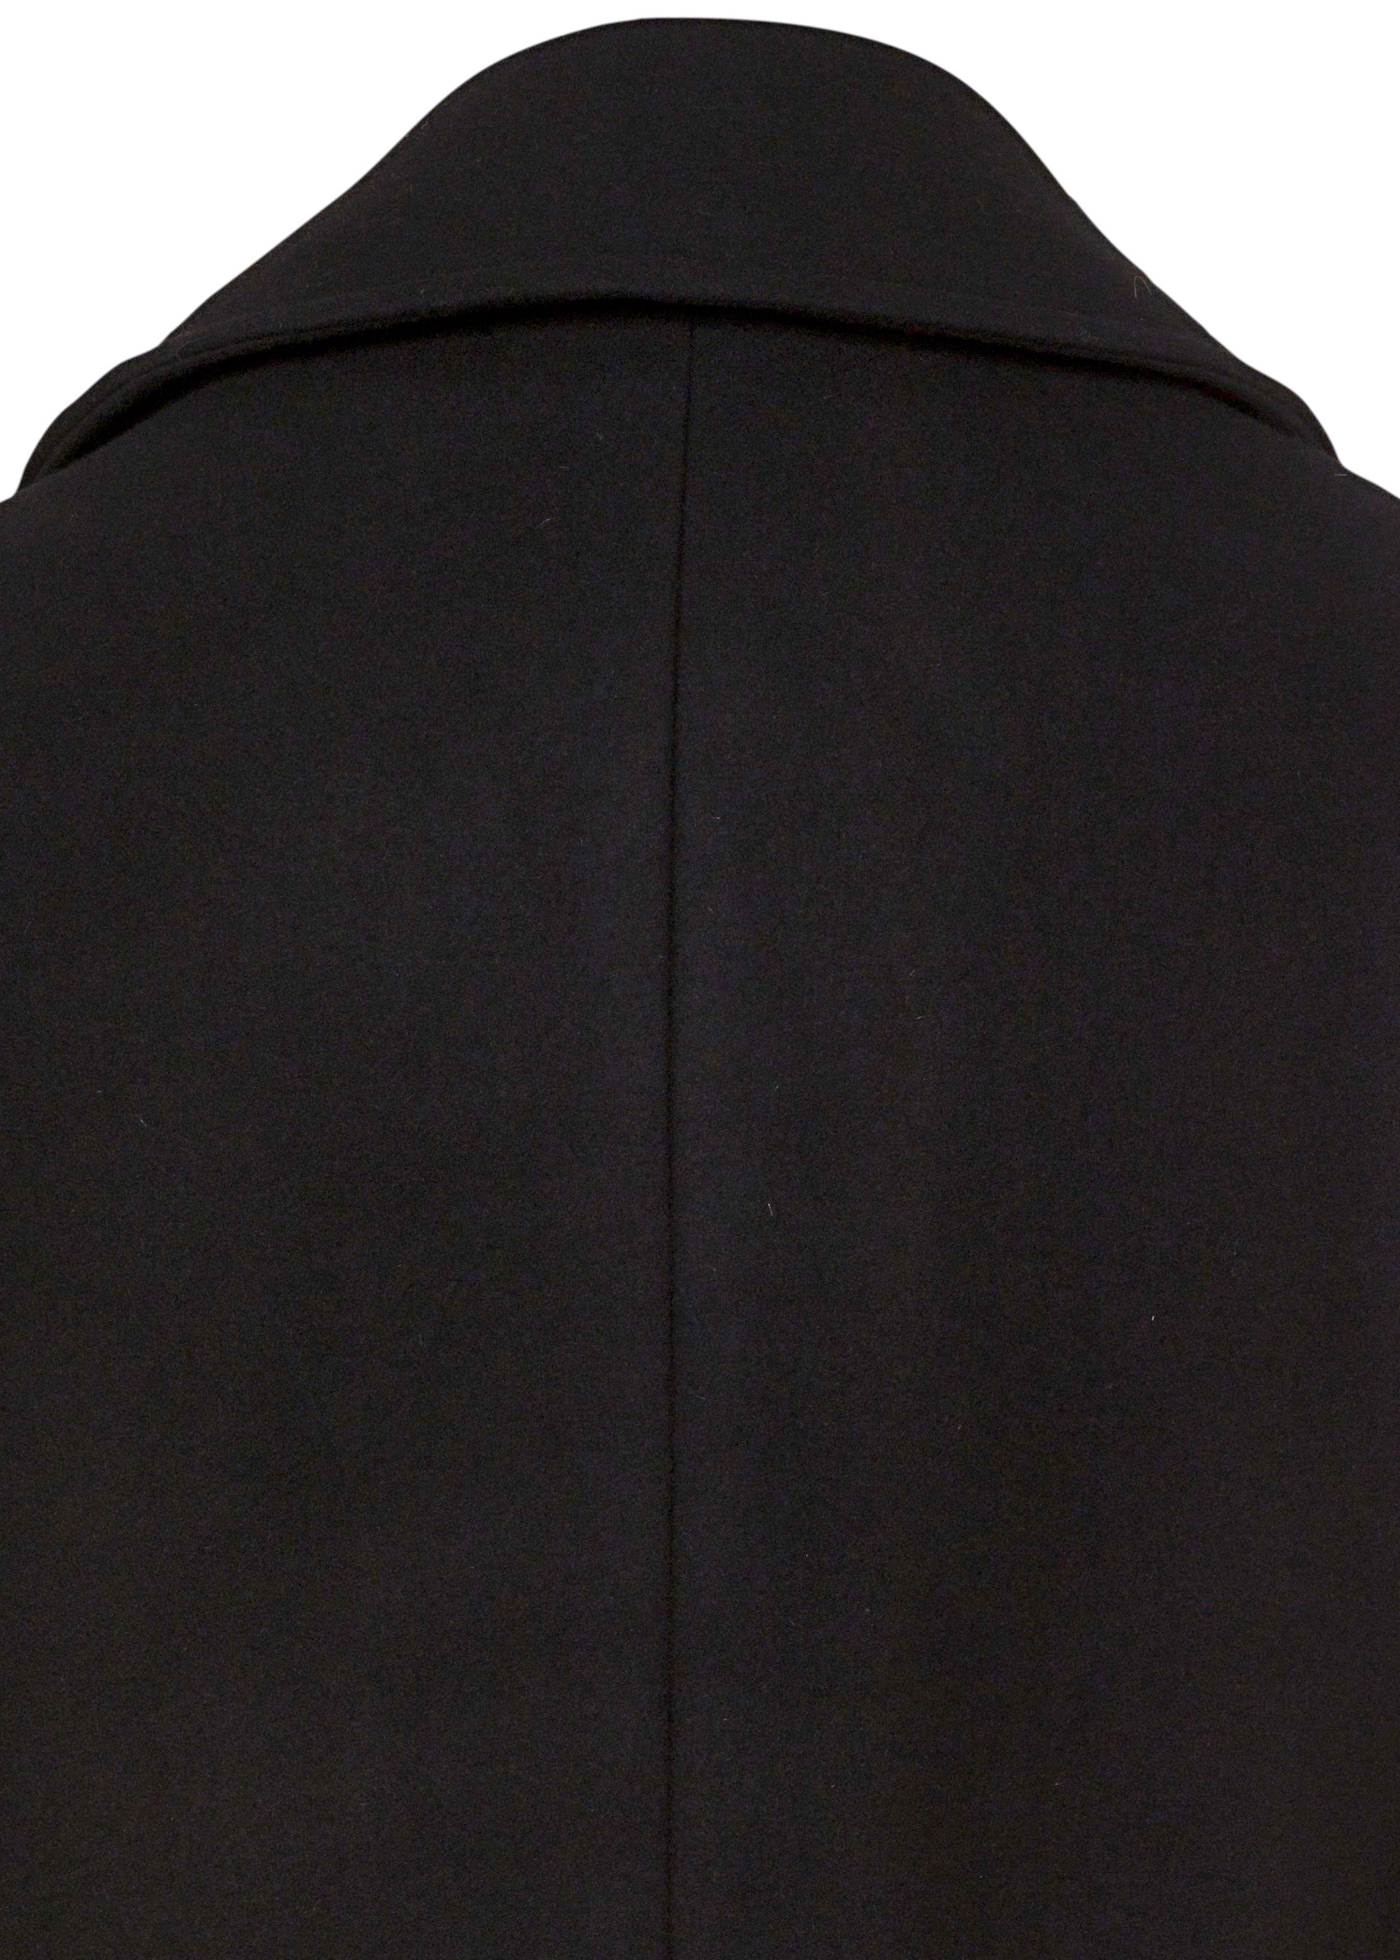 PEACOAT image number 3